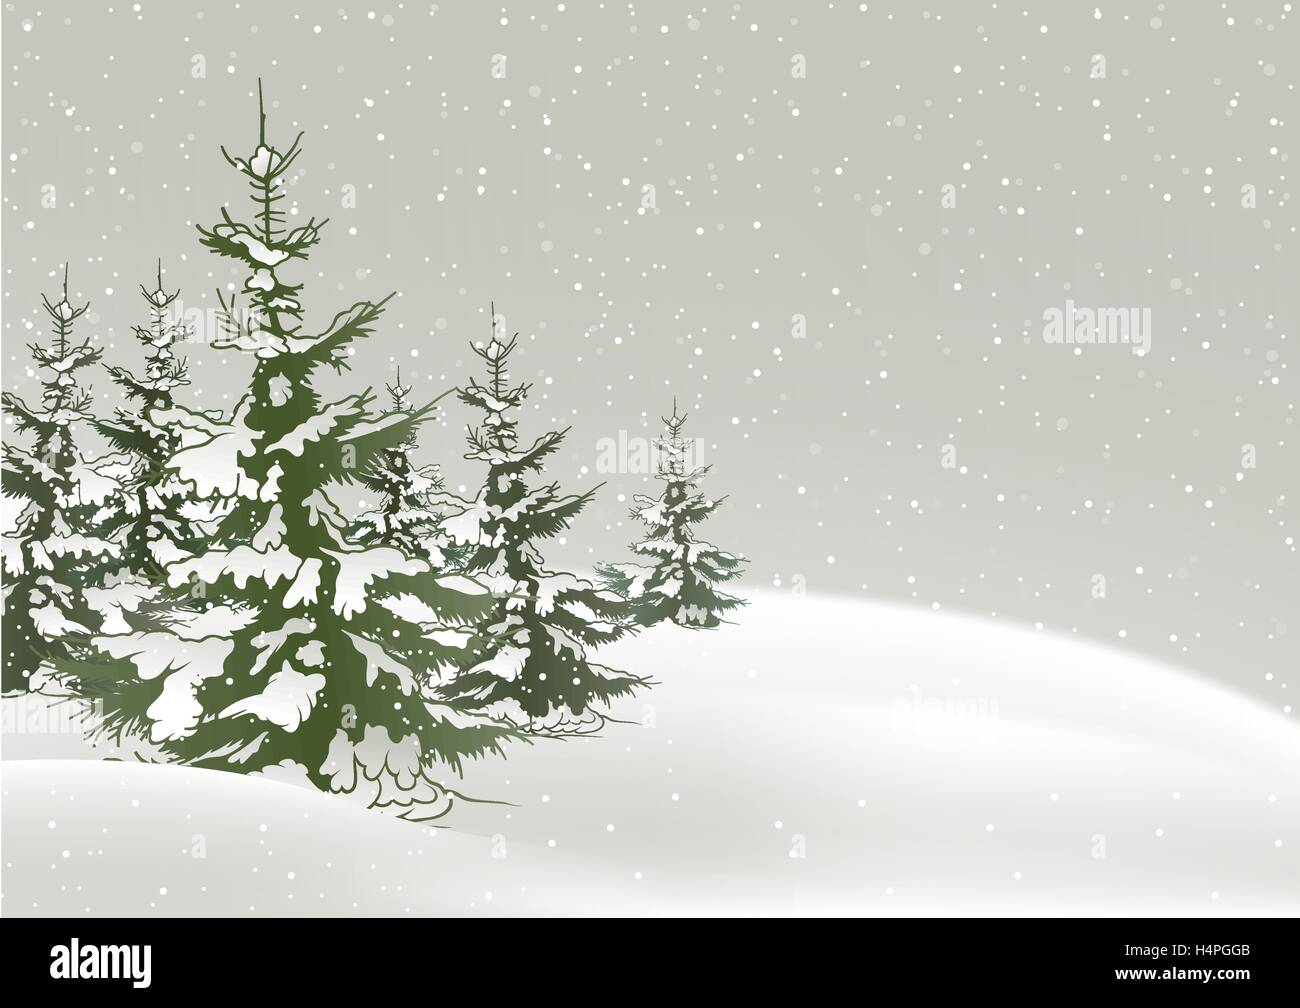 Snow Falling On Conifers - Stock Vector